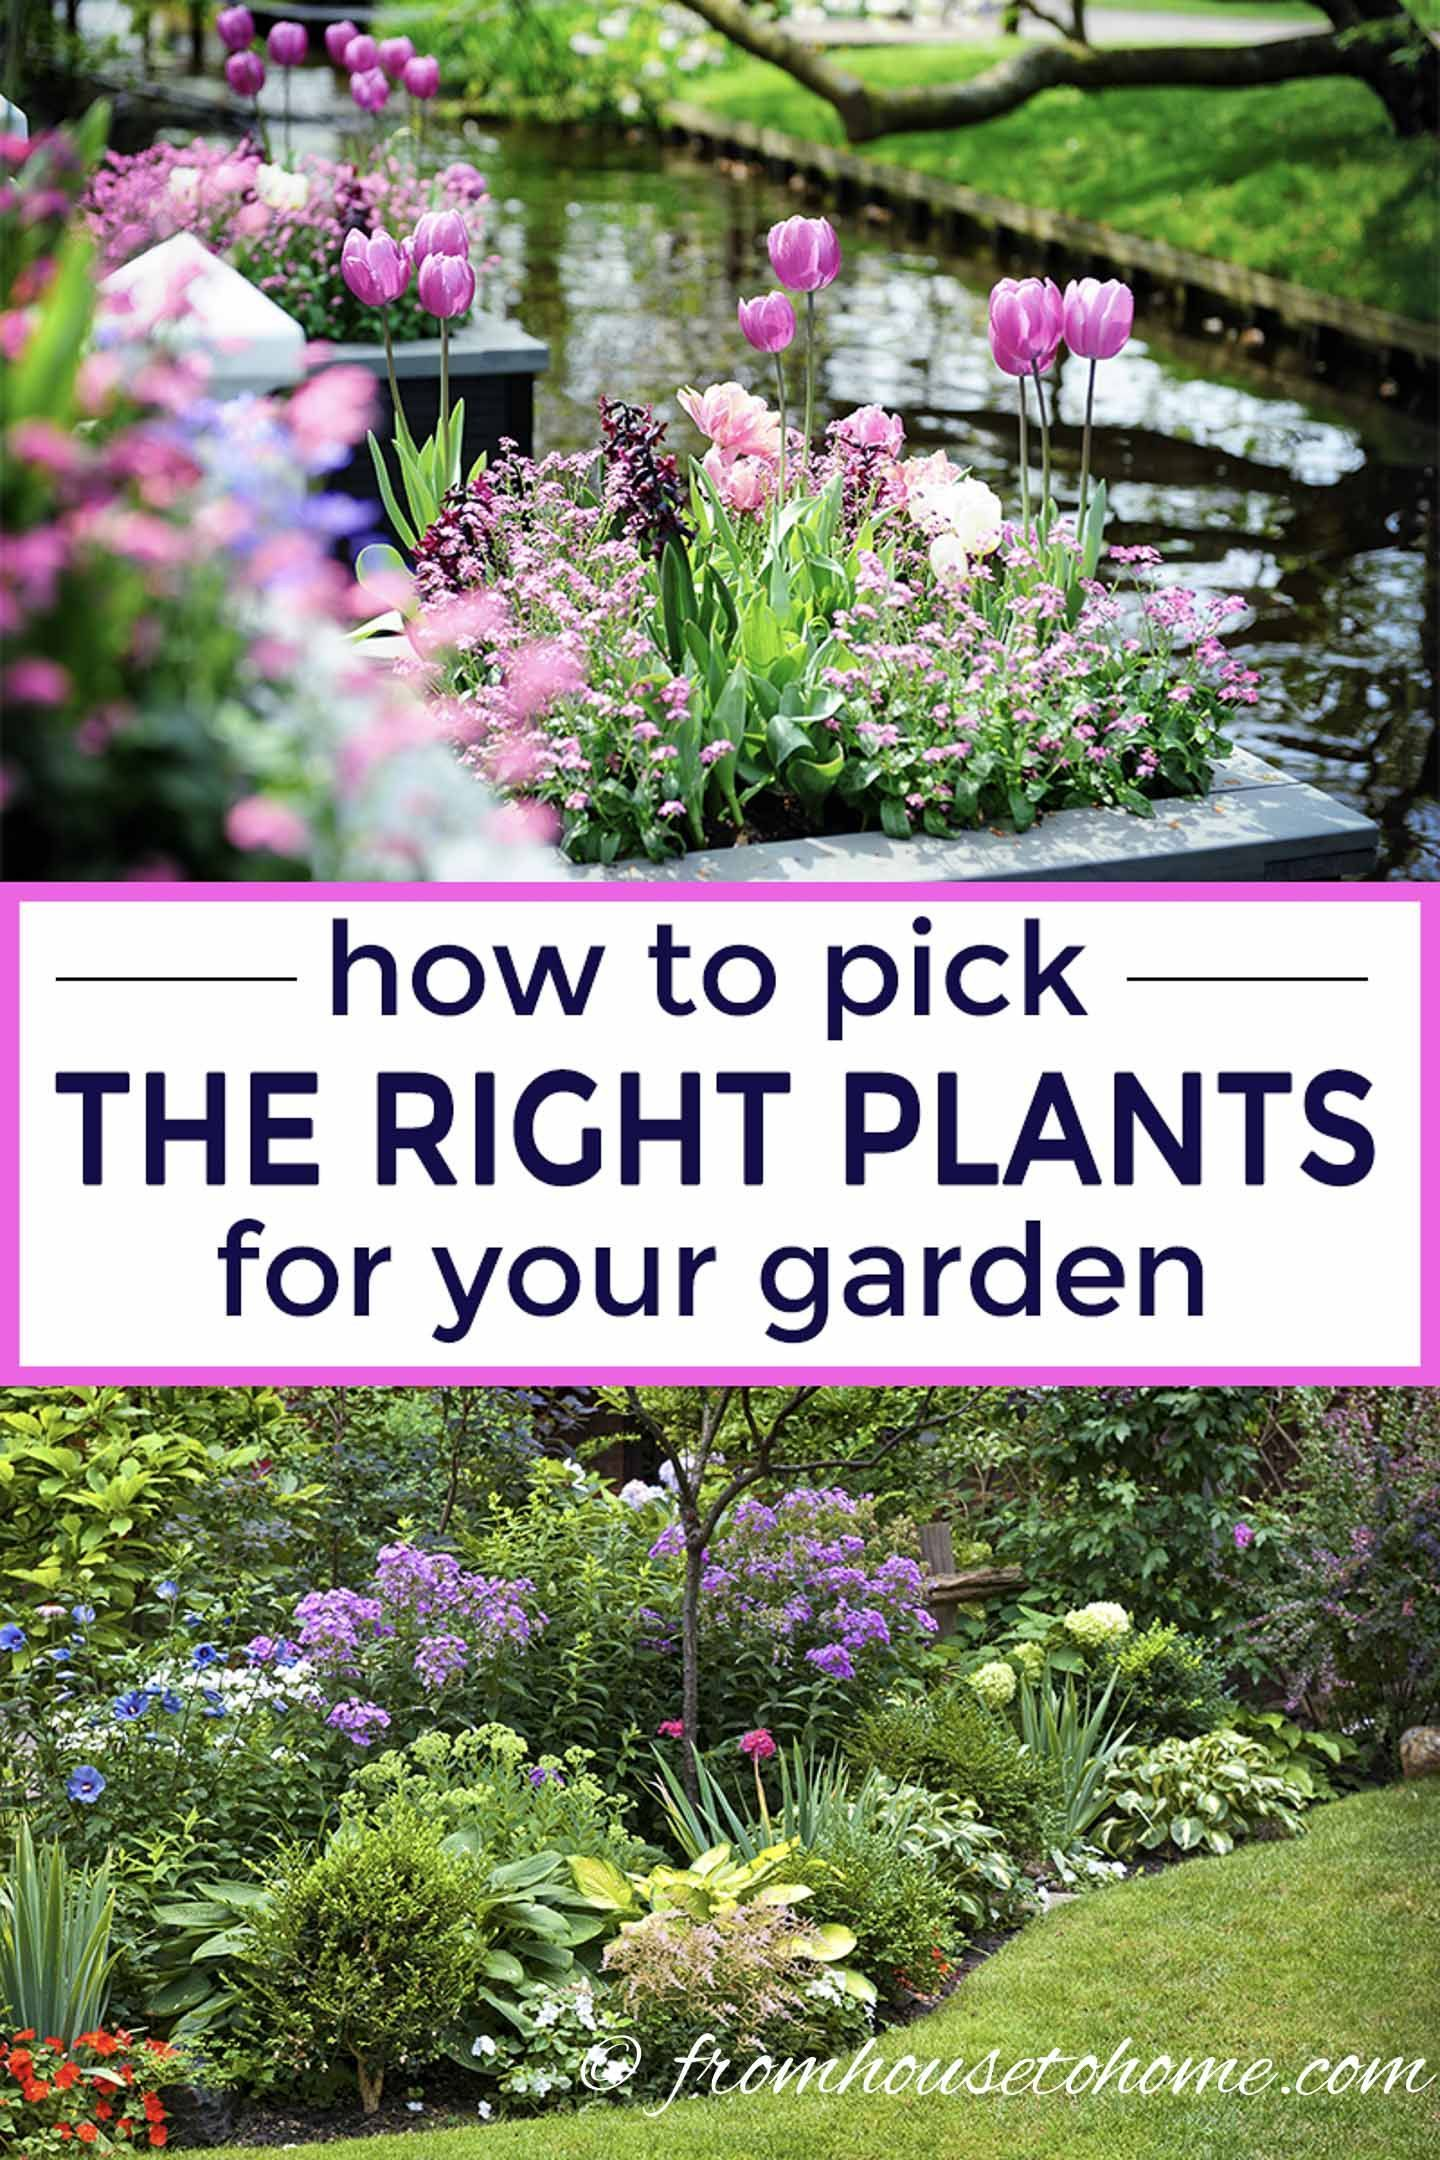 how to choose plants for landscaping your garden | backyard